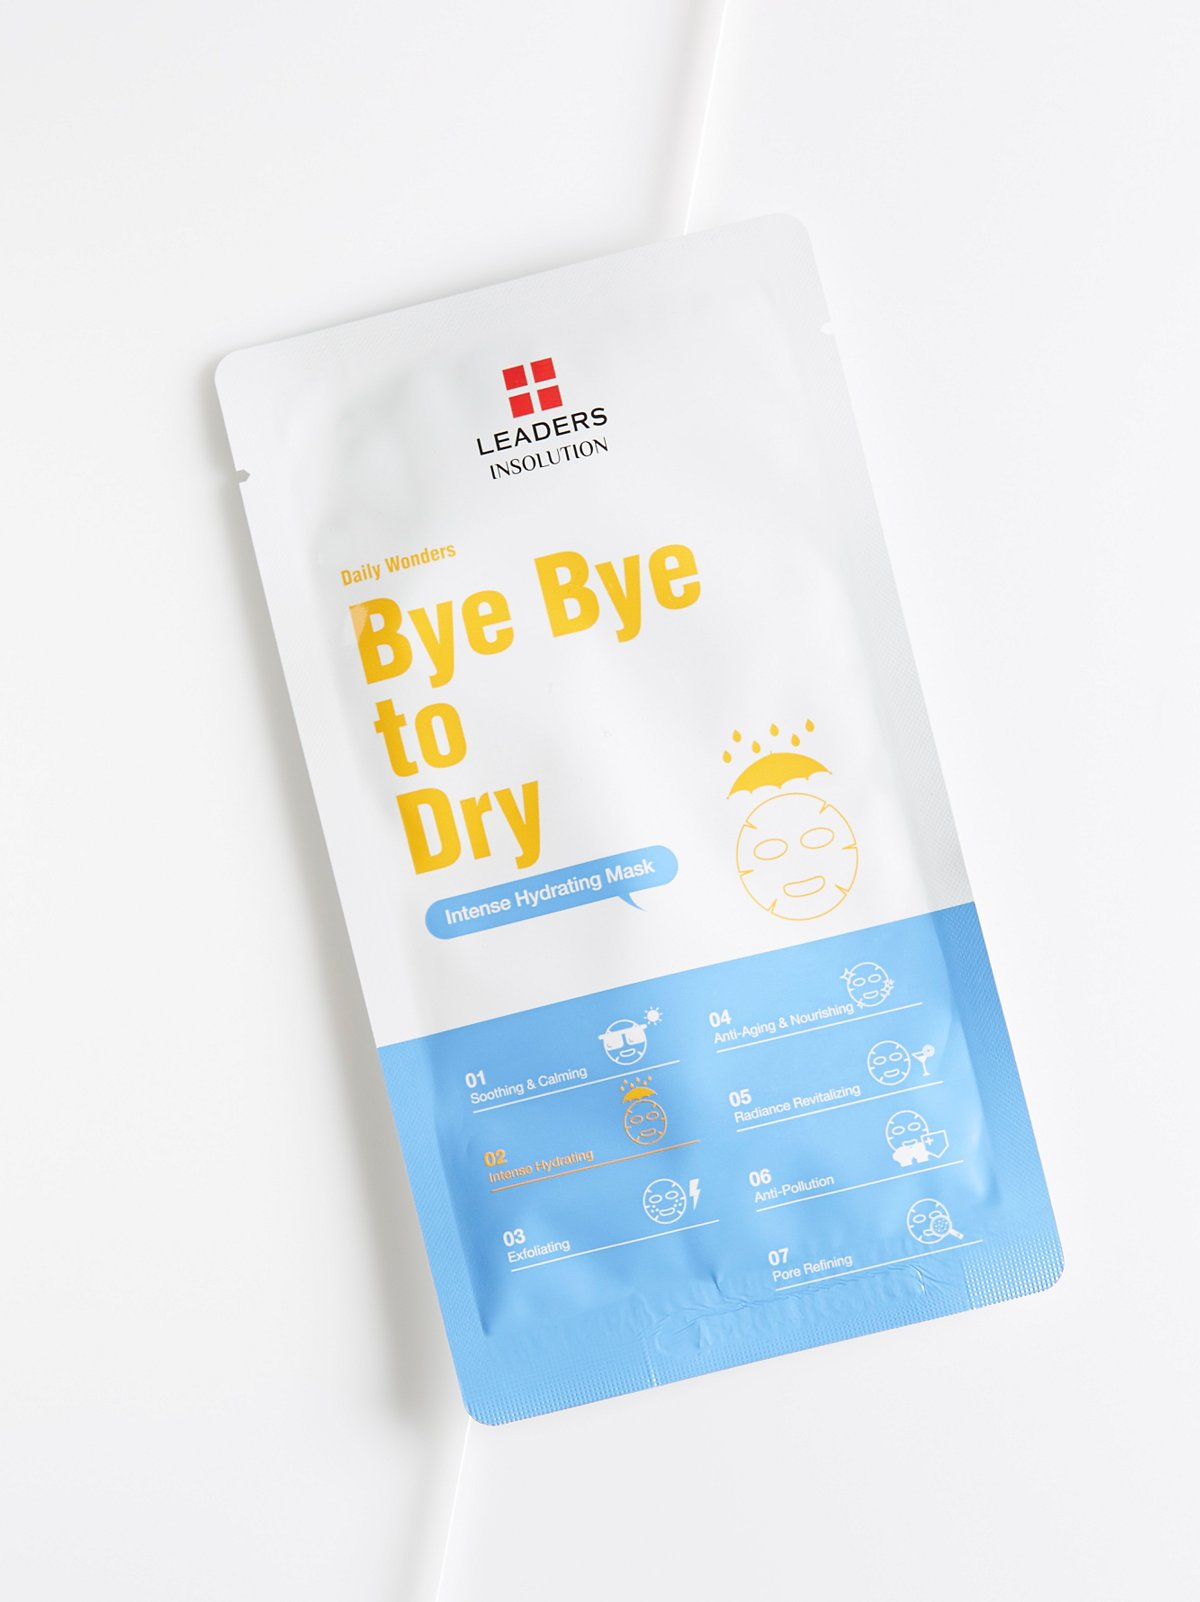 Daily Wonders Bye Bye To Dry Mask